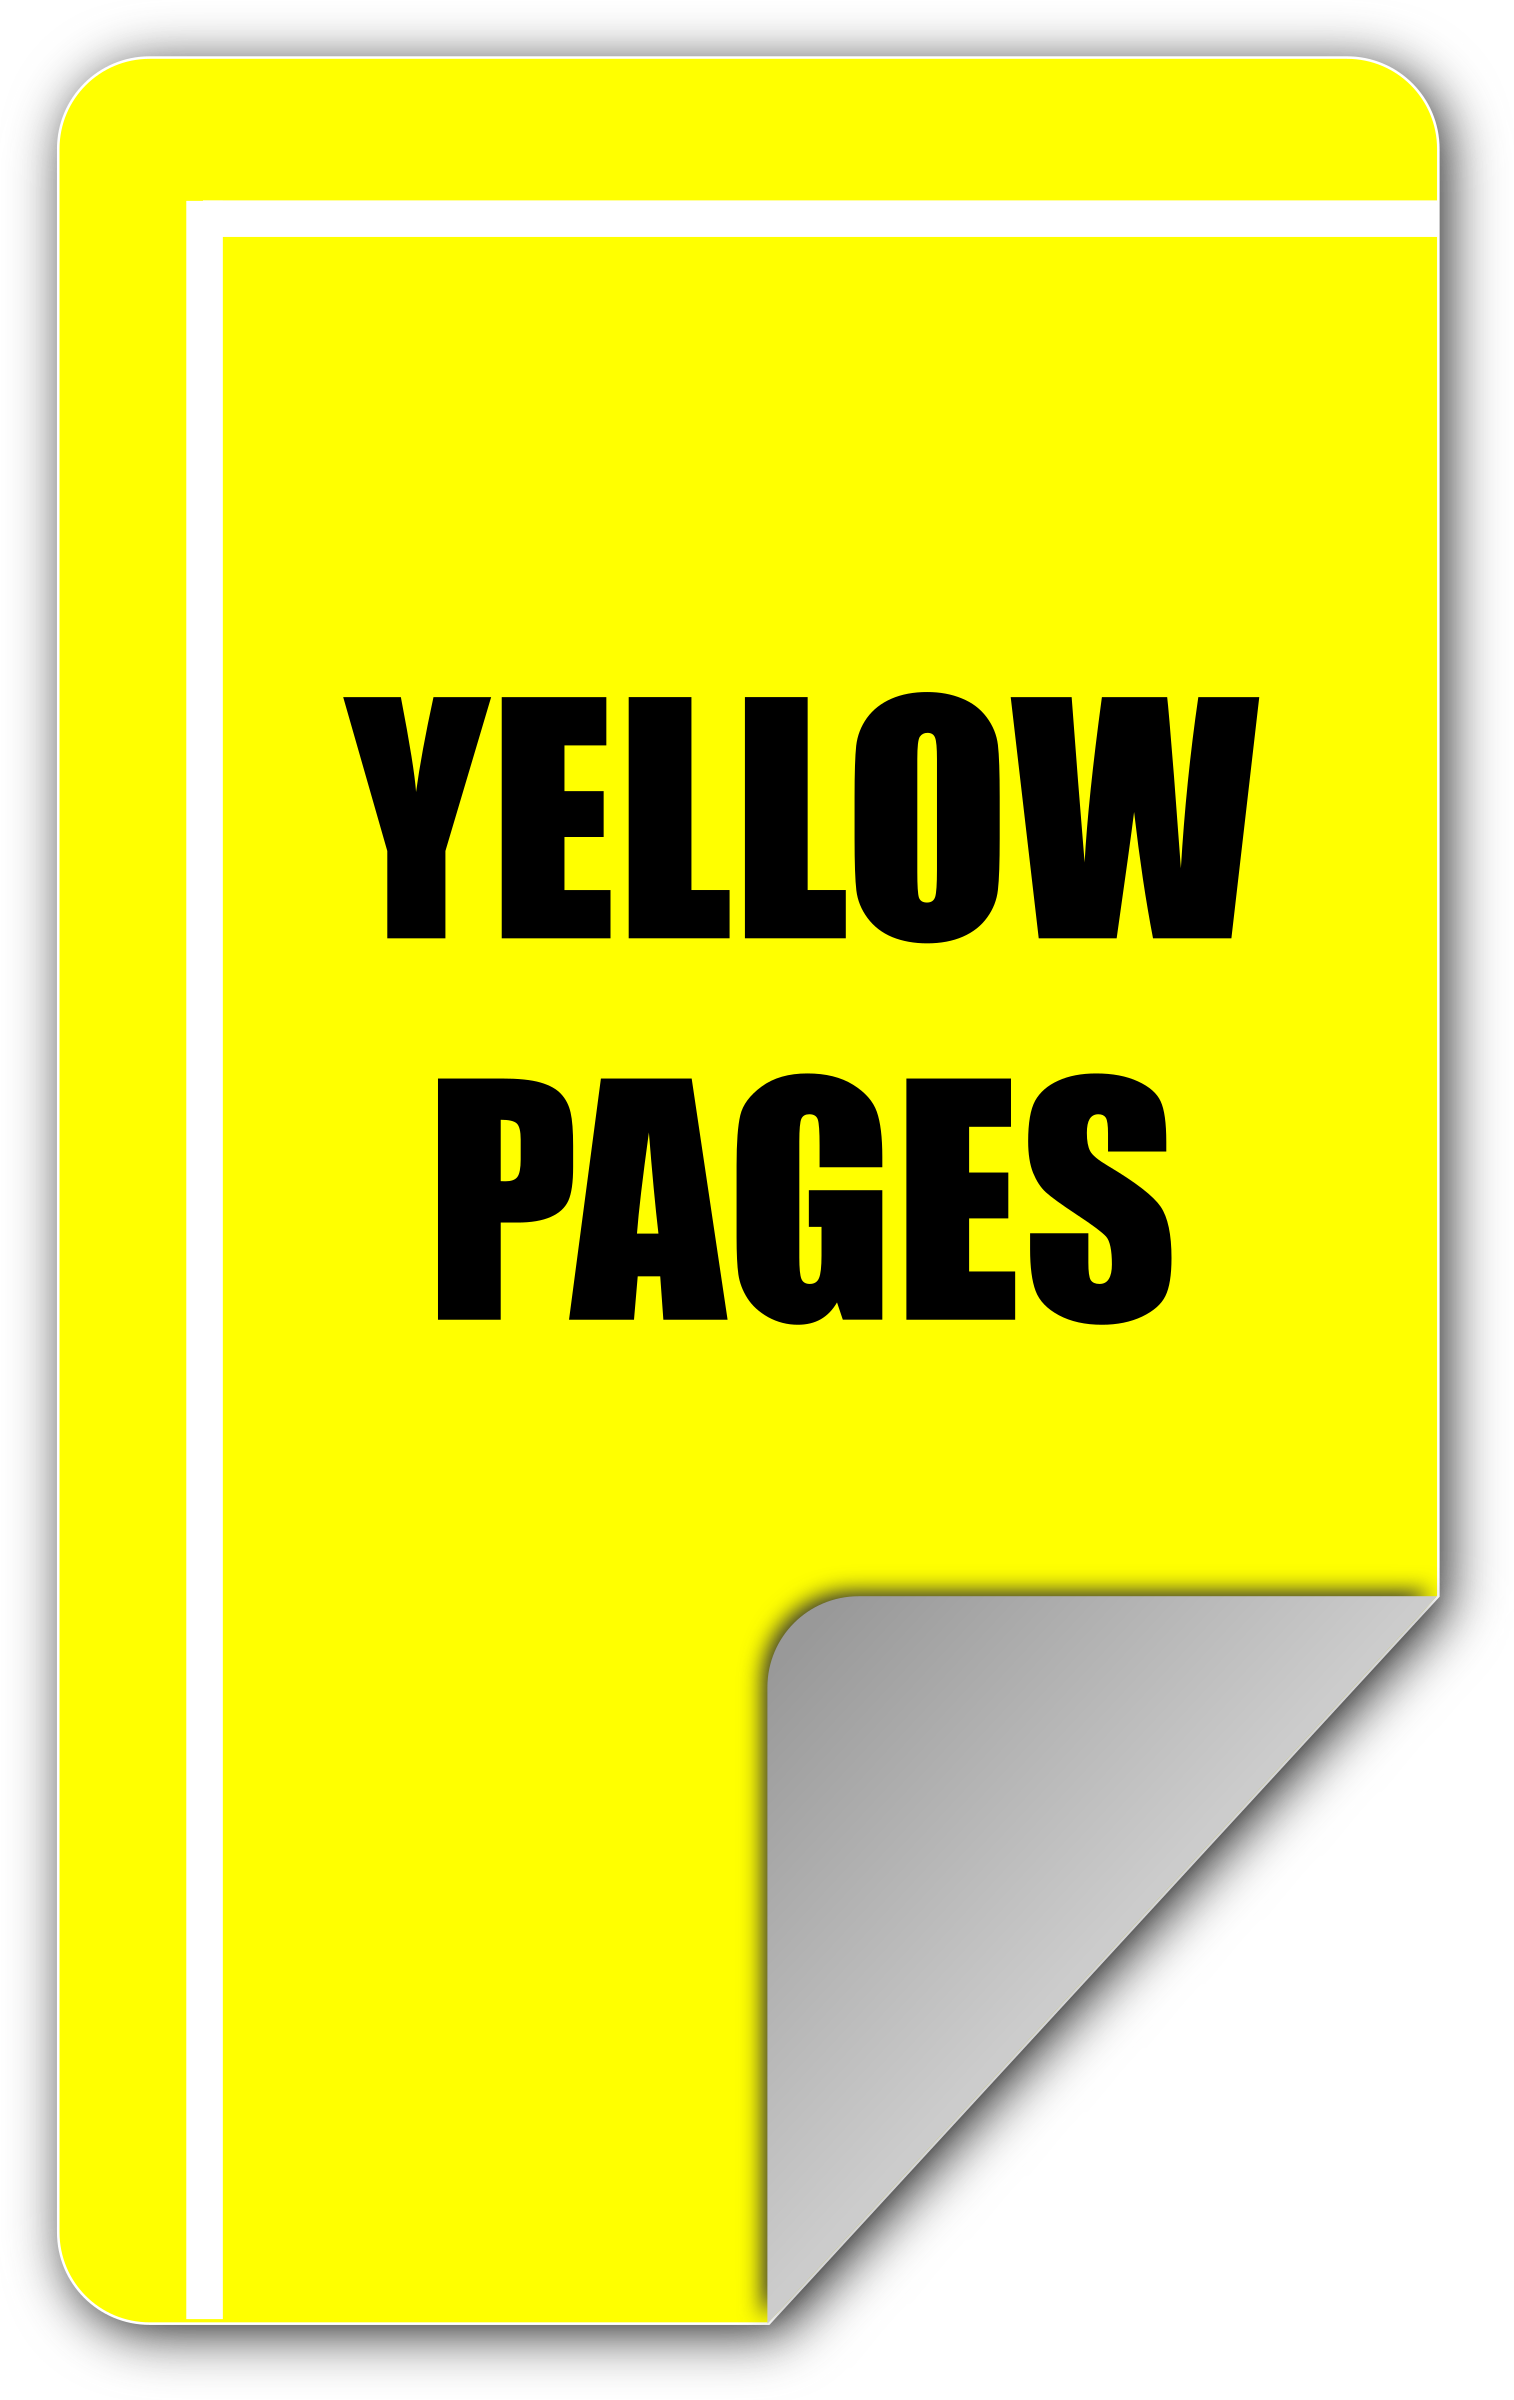 Yellow Pages by gsagri04